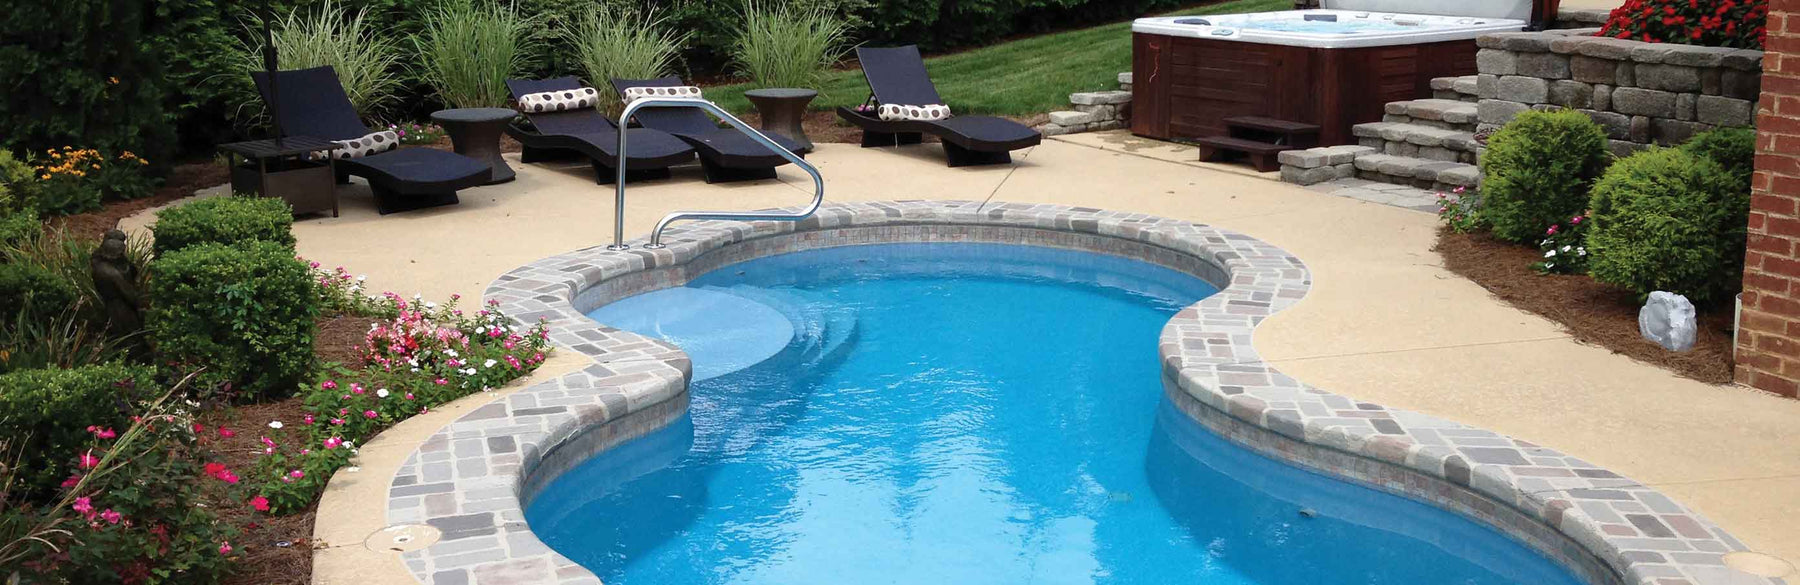 What Makes The Best Fiberglass Pools Last So Long? (Part II)